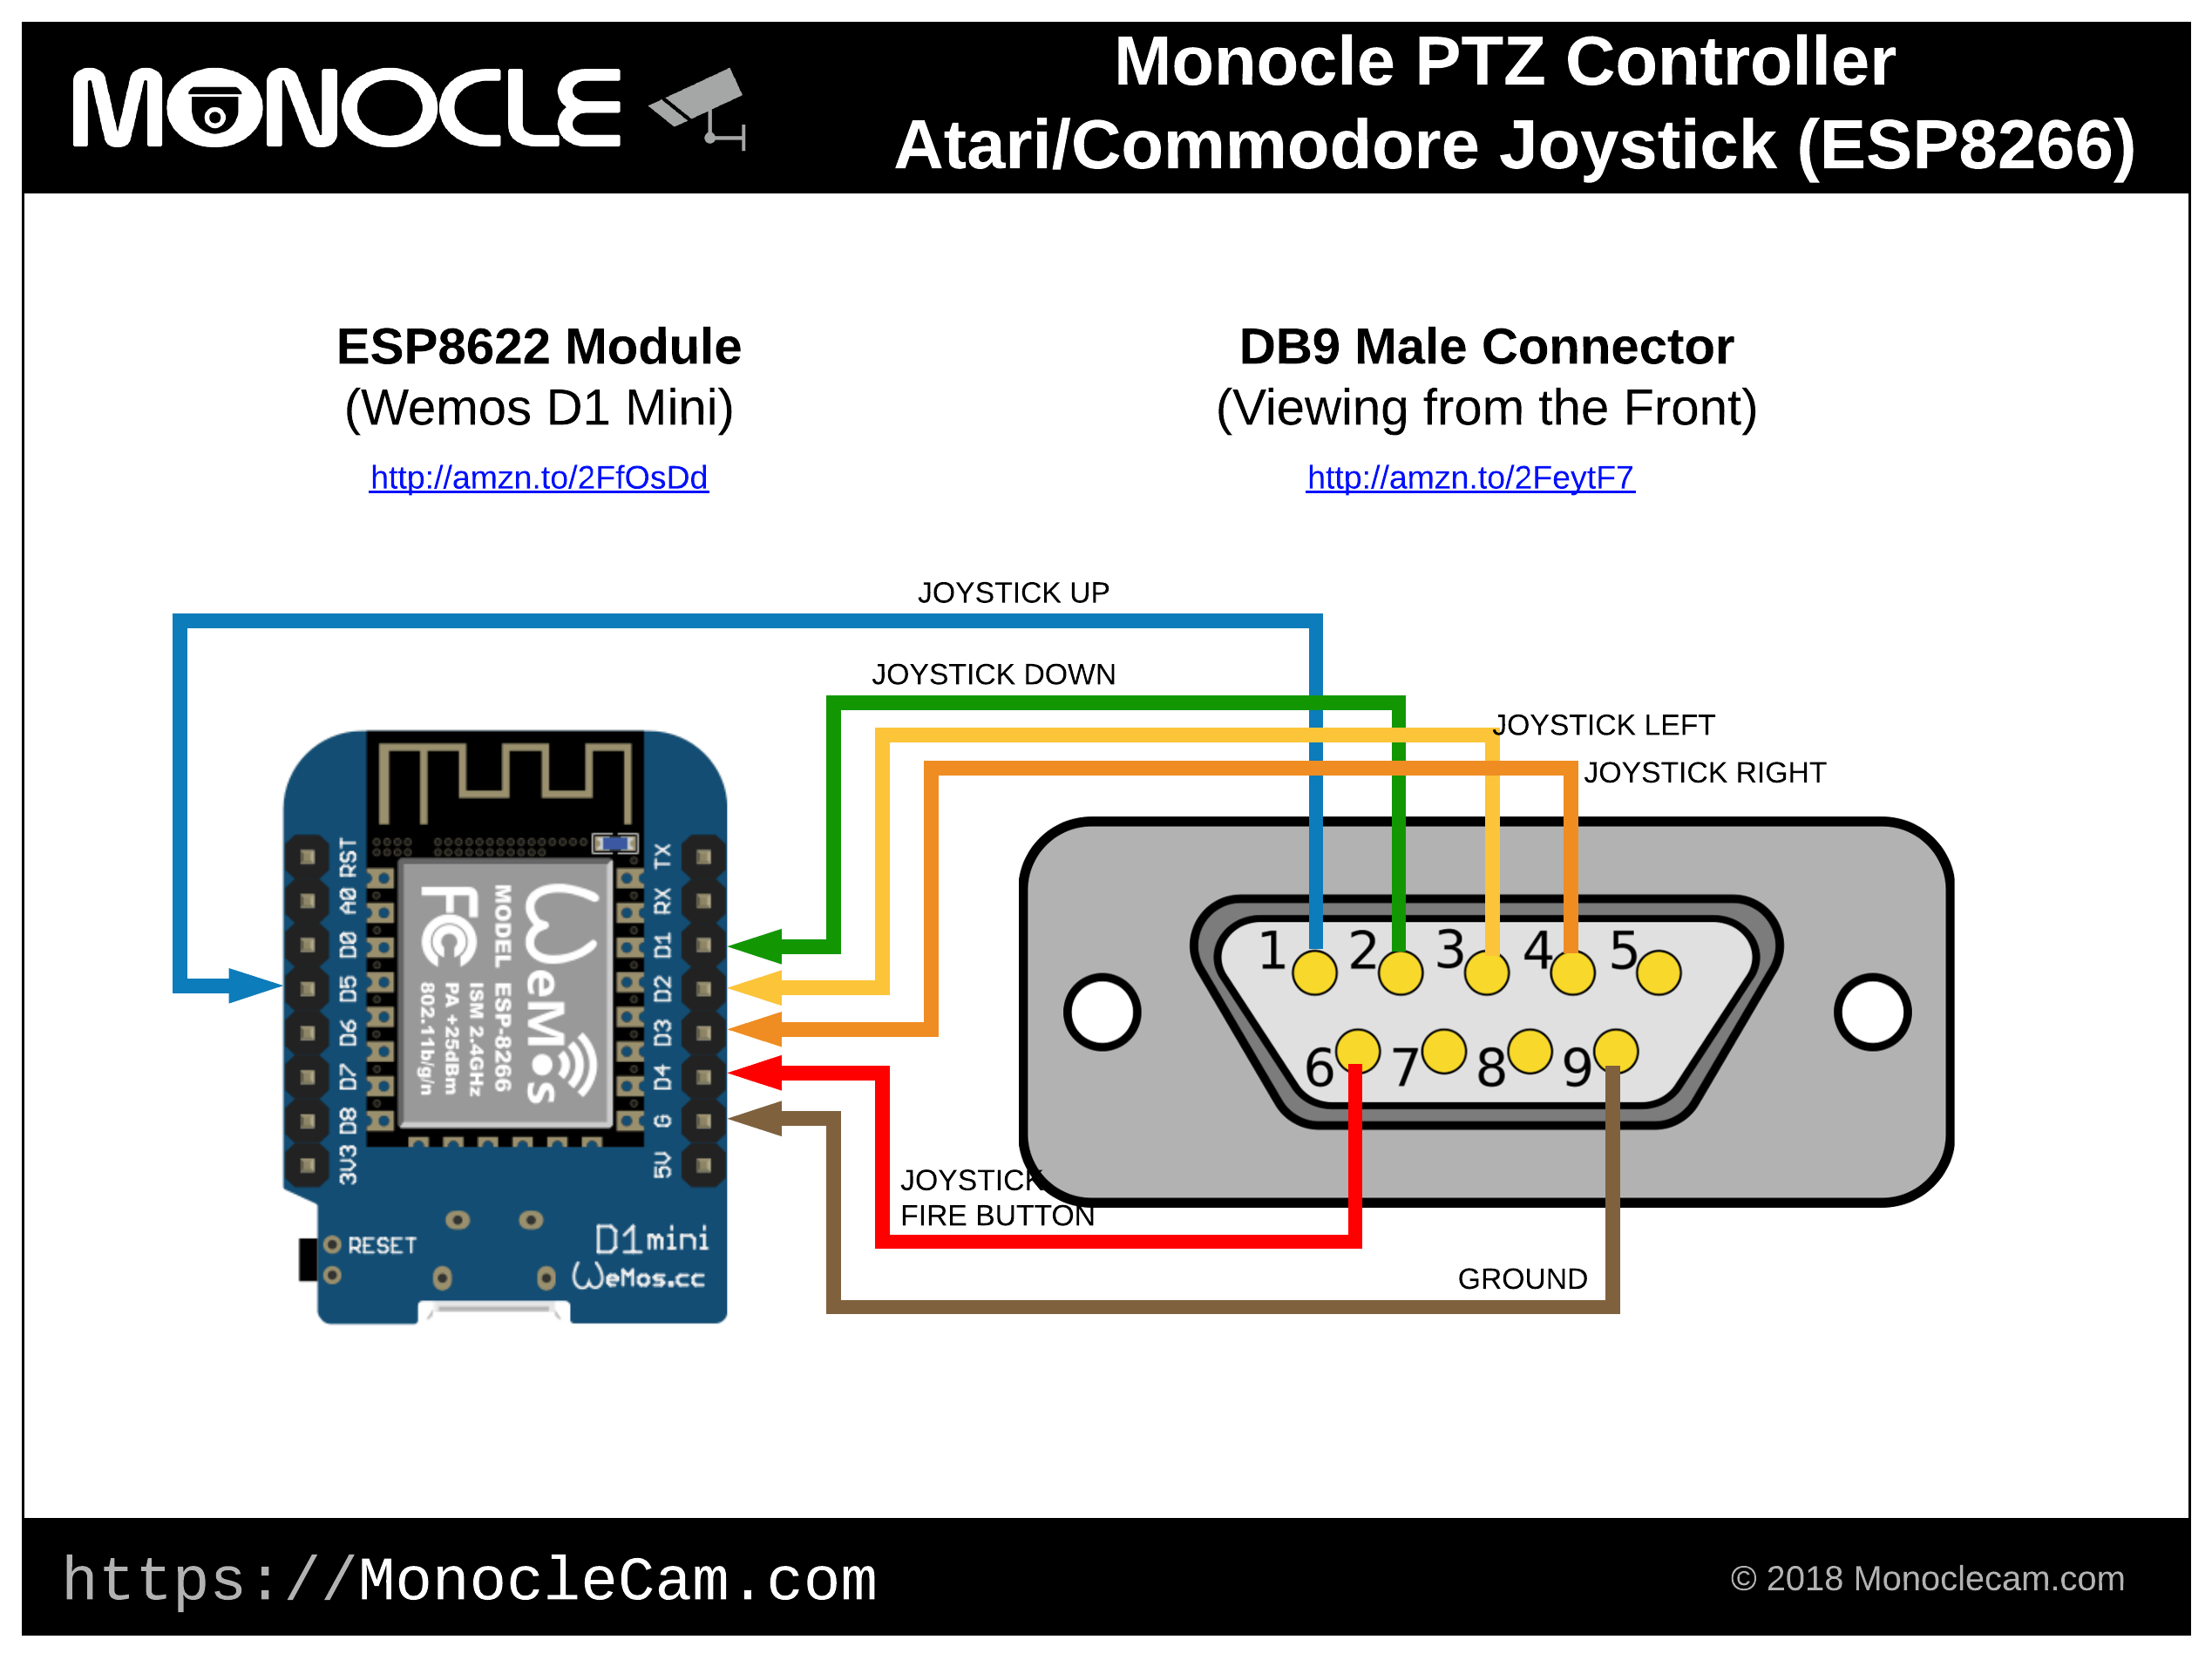 Please note the wiring diagram for the other variants are includes in the schematics section of this article.